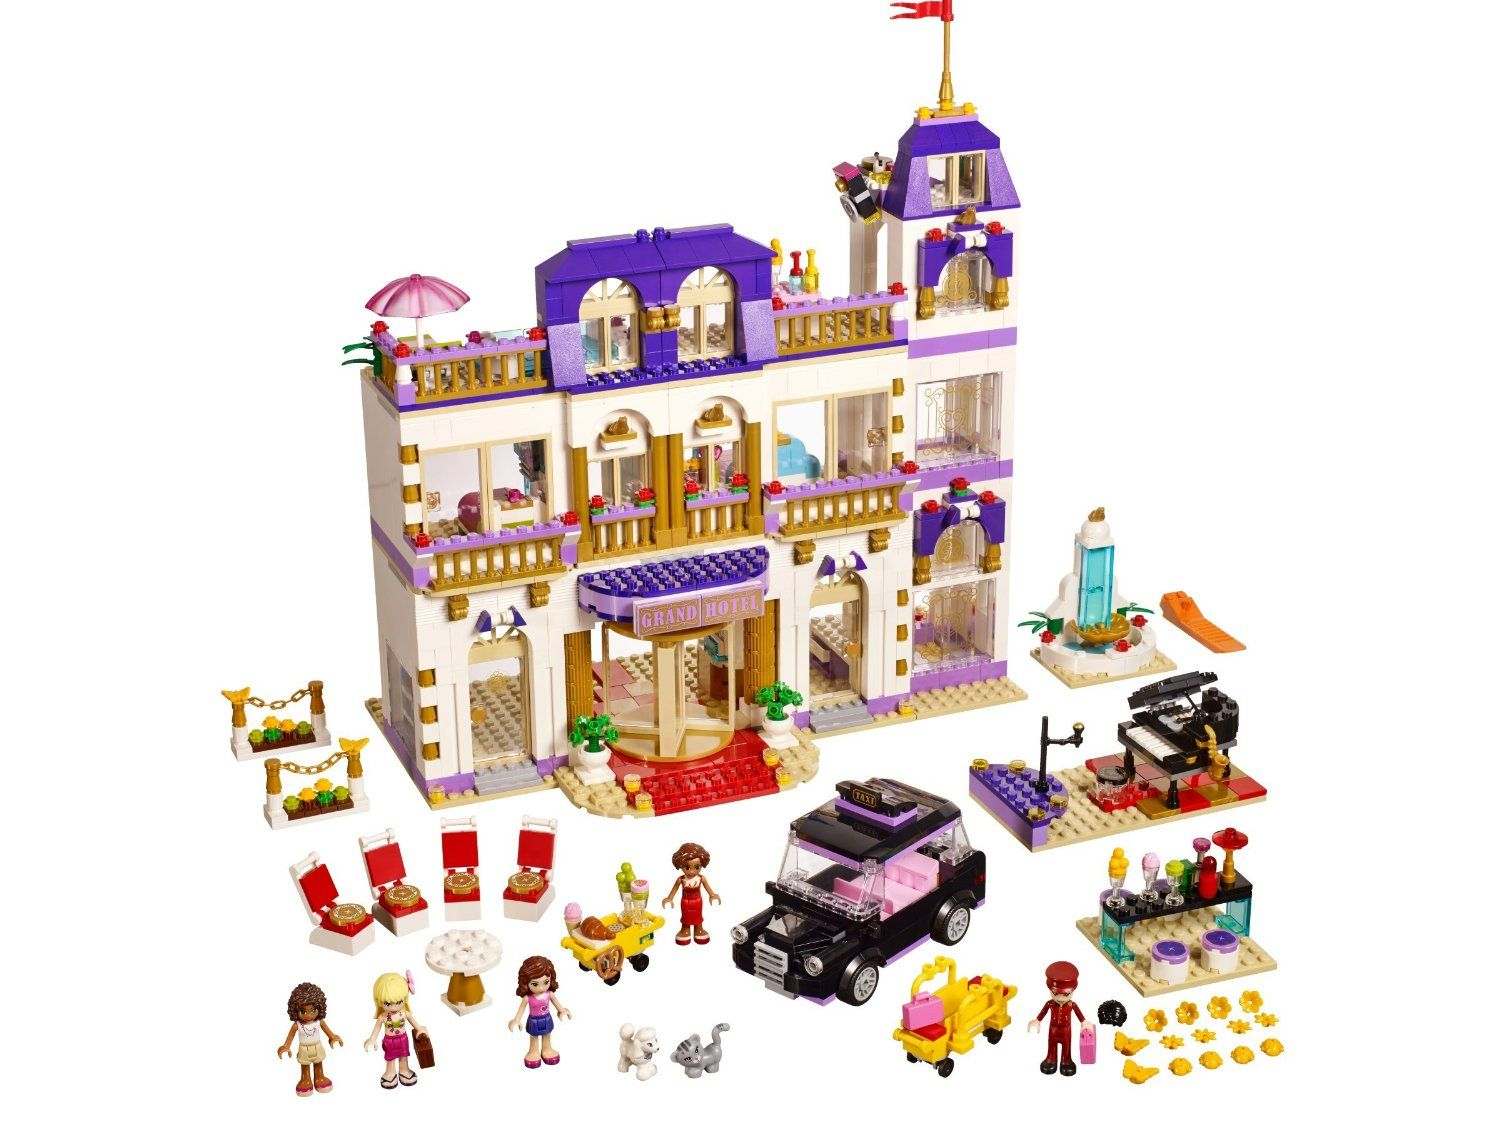 Lego friends heartlake grand hotel 41101 lego friends uk - Lego 41101 Friends Heartlake Grand Hotel Amazon Co Uk Toys Games